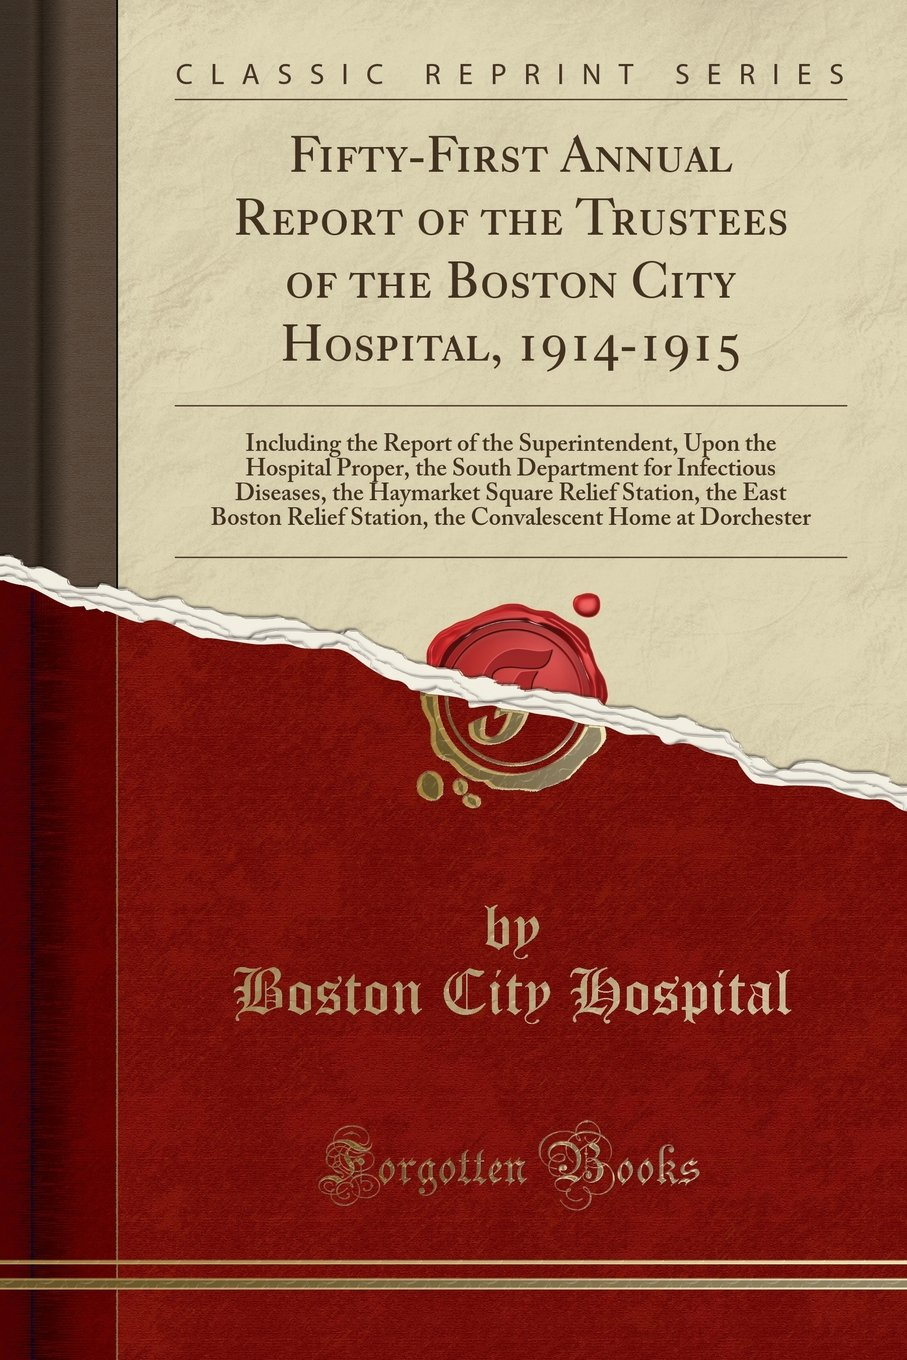 Download Fifty-First Annual Report of the Trustees of the Boston City Hospital, 1914-1915: Including the Report of the Superintendent, Upon the Hospital ... Square Relief Station, the East Boston Reli pdf epub